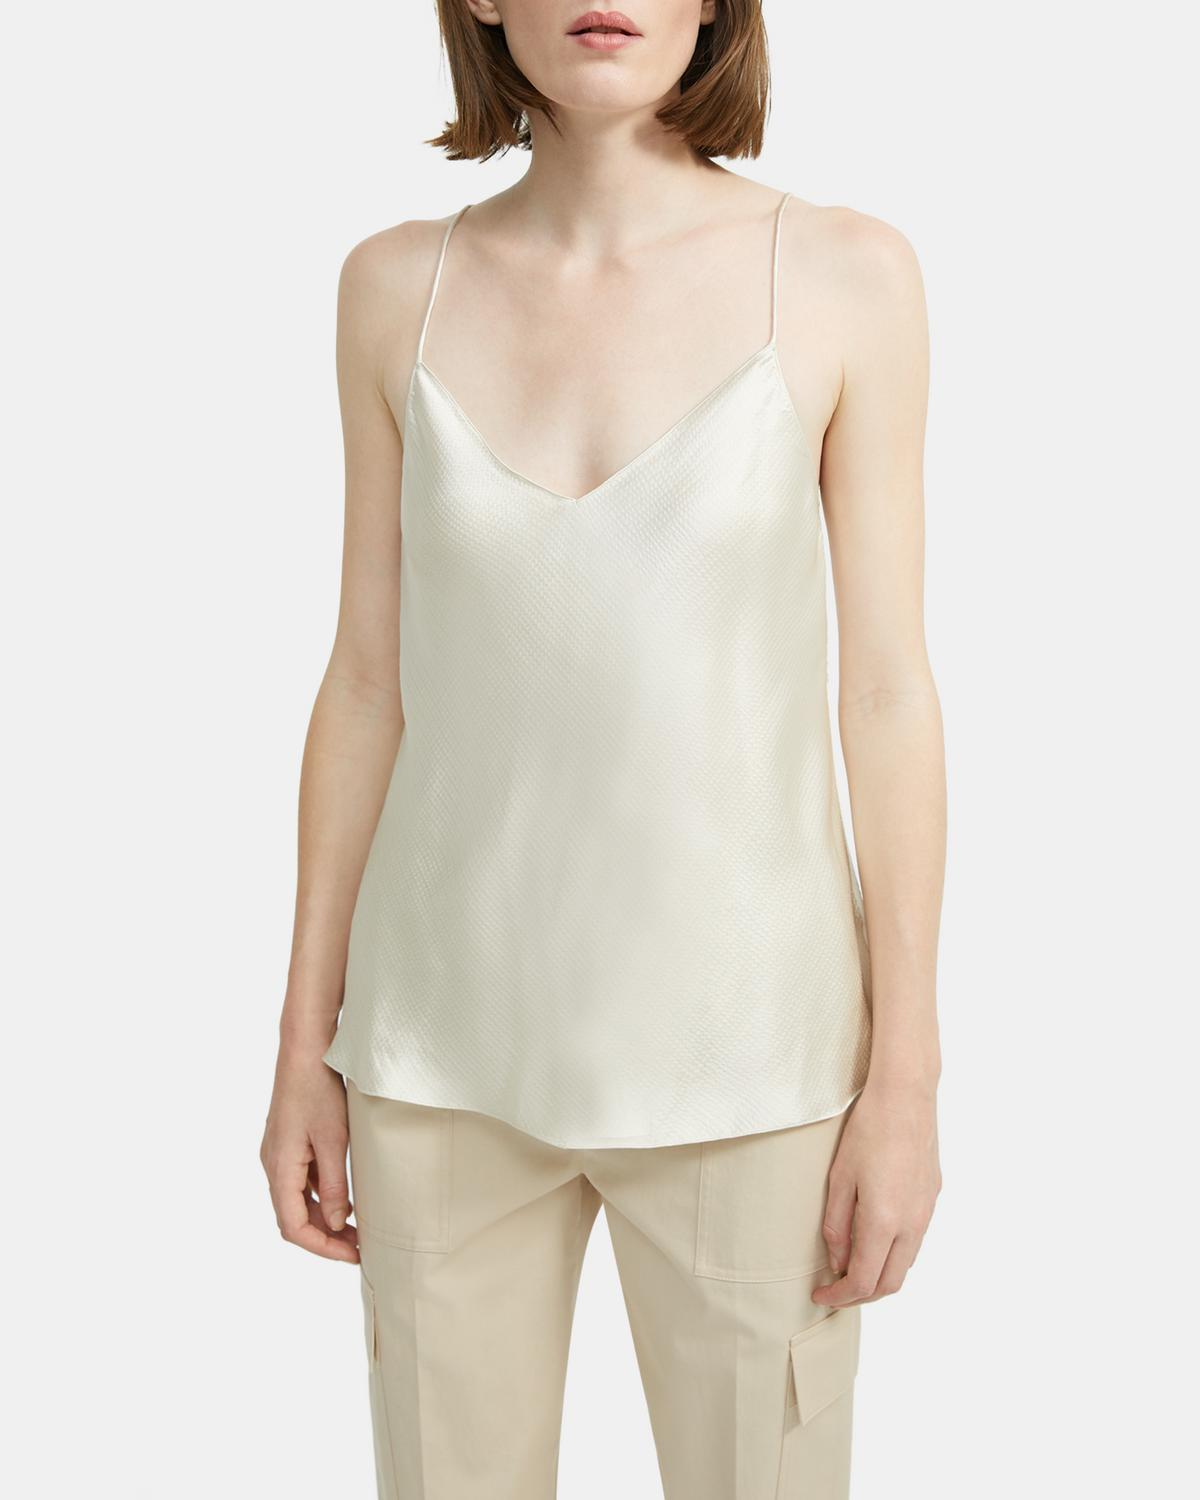 Hammered Viscose Easy Slip Top